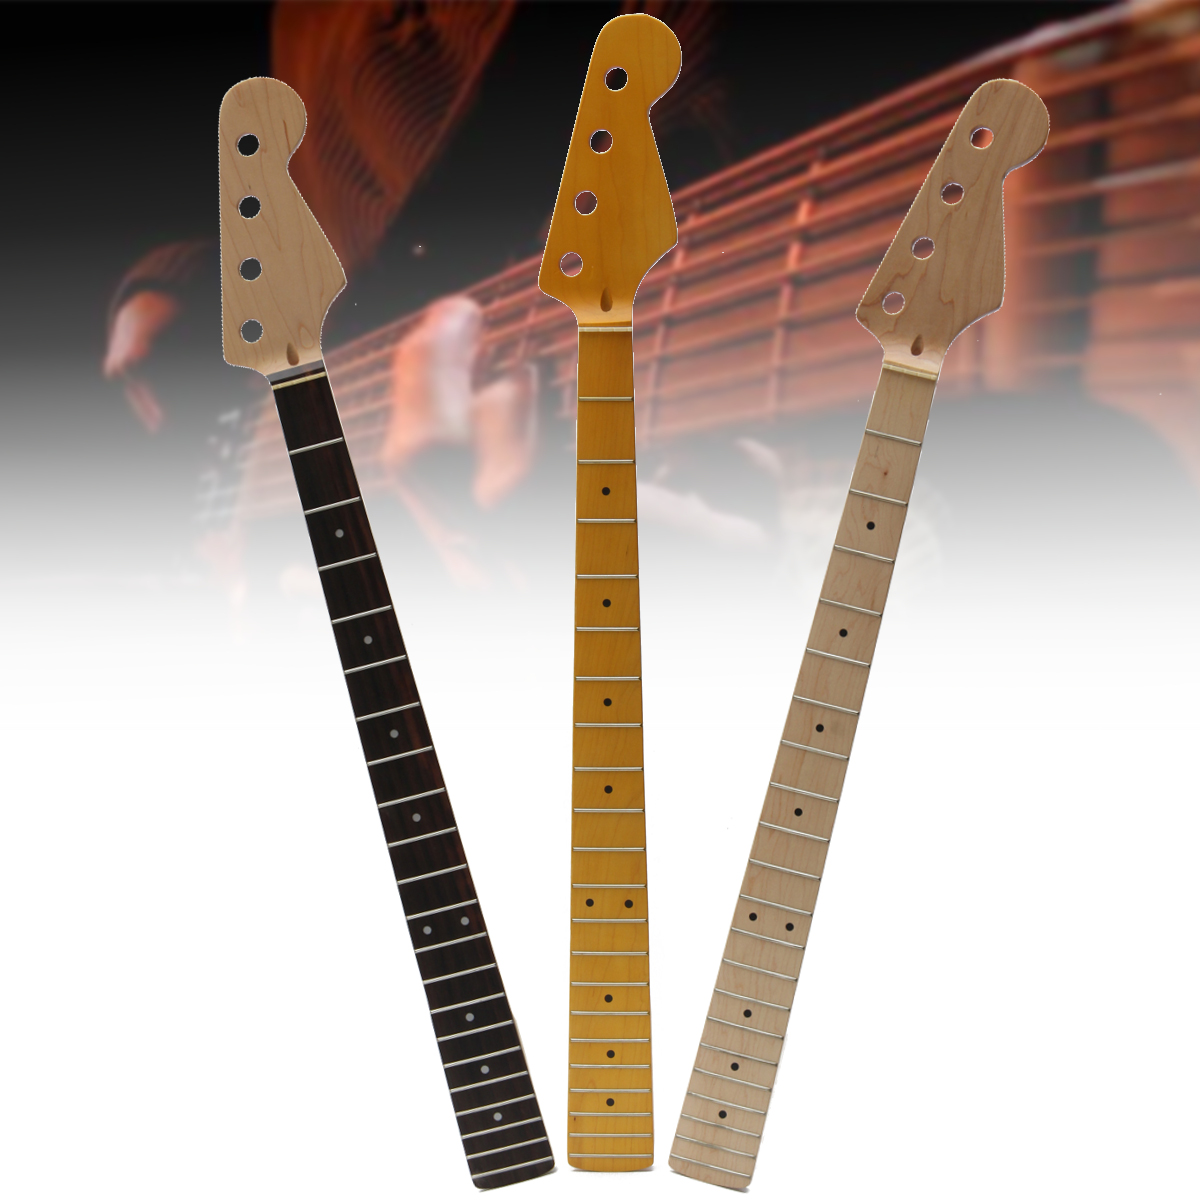 electric guitar neck replacement guitar parts flame rose wood fretboard 21 fret ebay. Black Bedroom Furniture Sets. Home Design Ideas